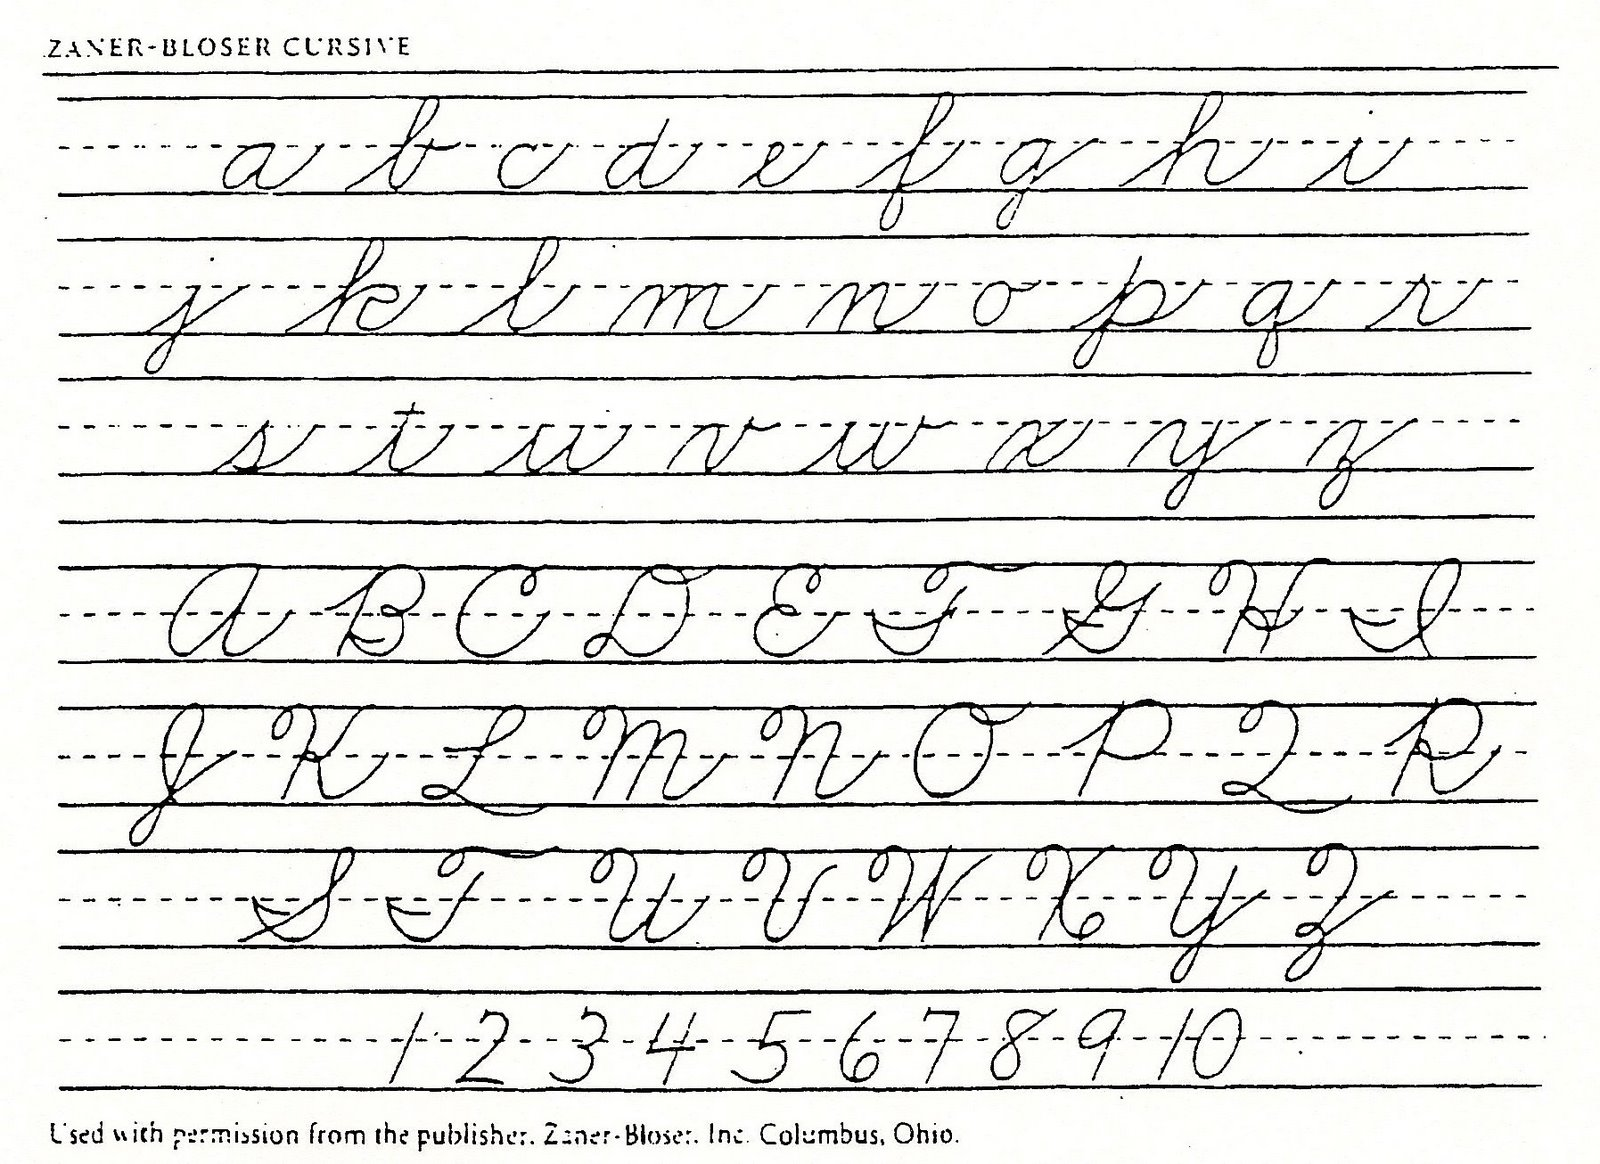 Worksheet Cursive Handwriting Guide handwriting transyada image